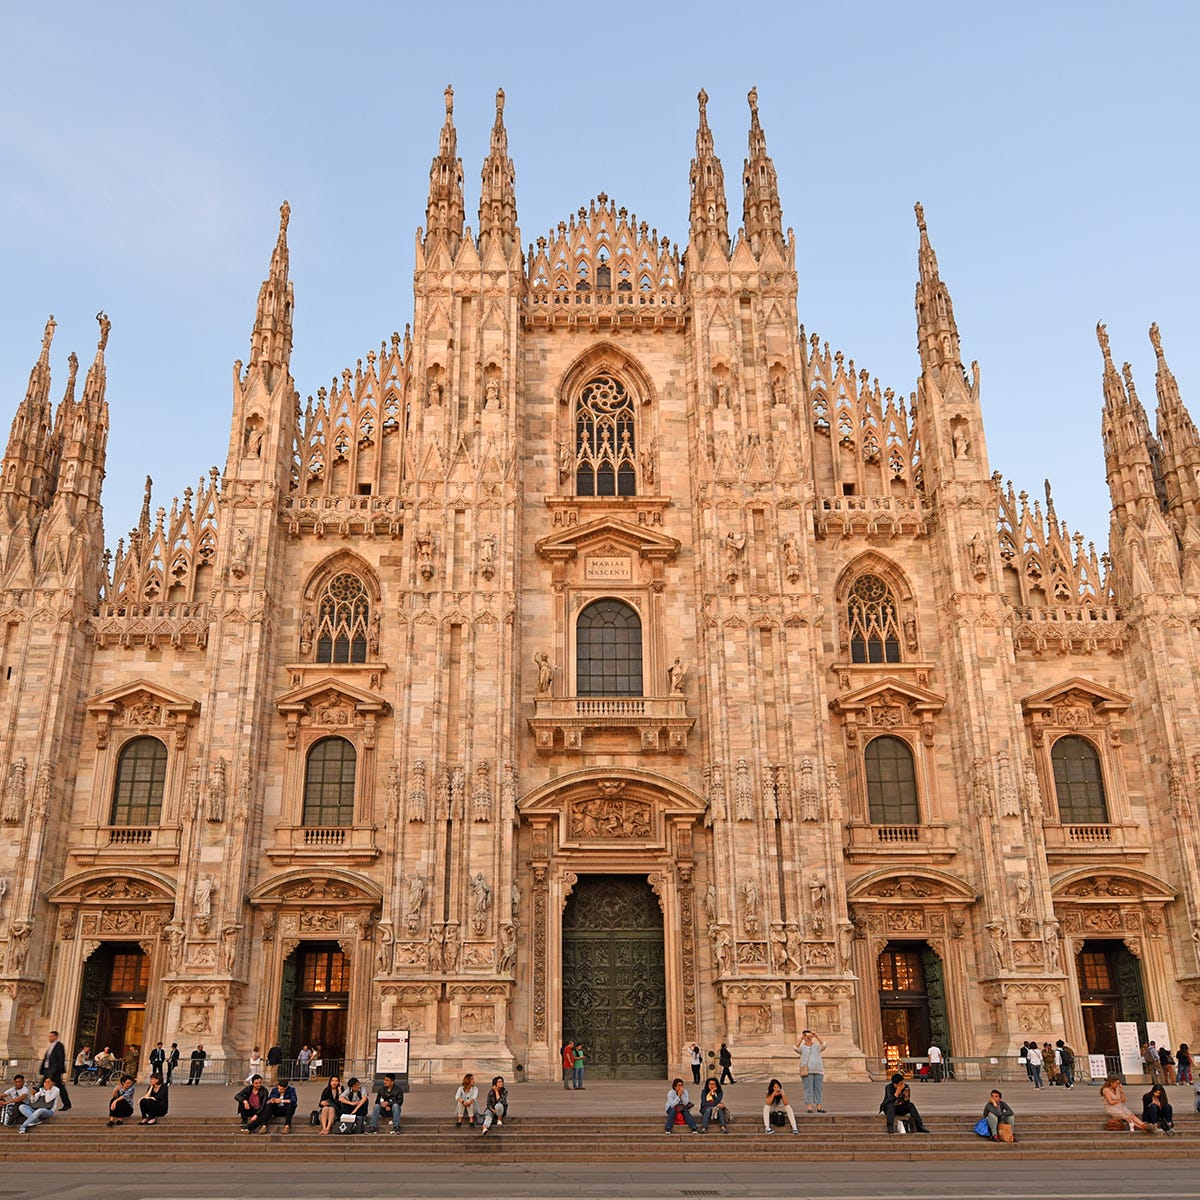 Made of pink marble and decorated with Gothic spires, Milan's cathedral is one of the largest in Europe.